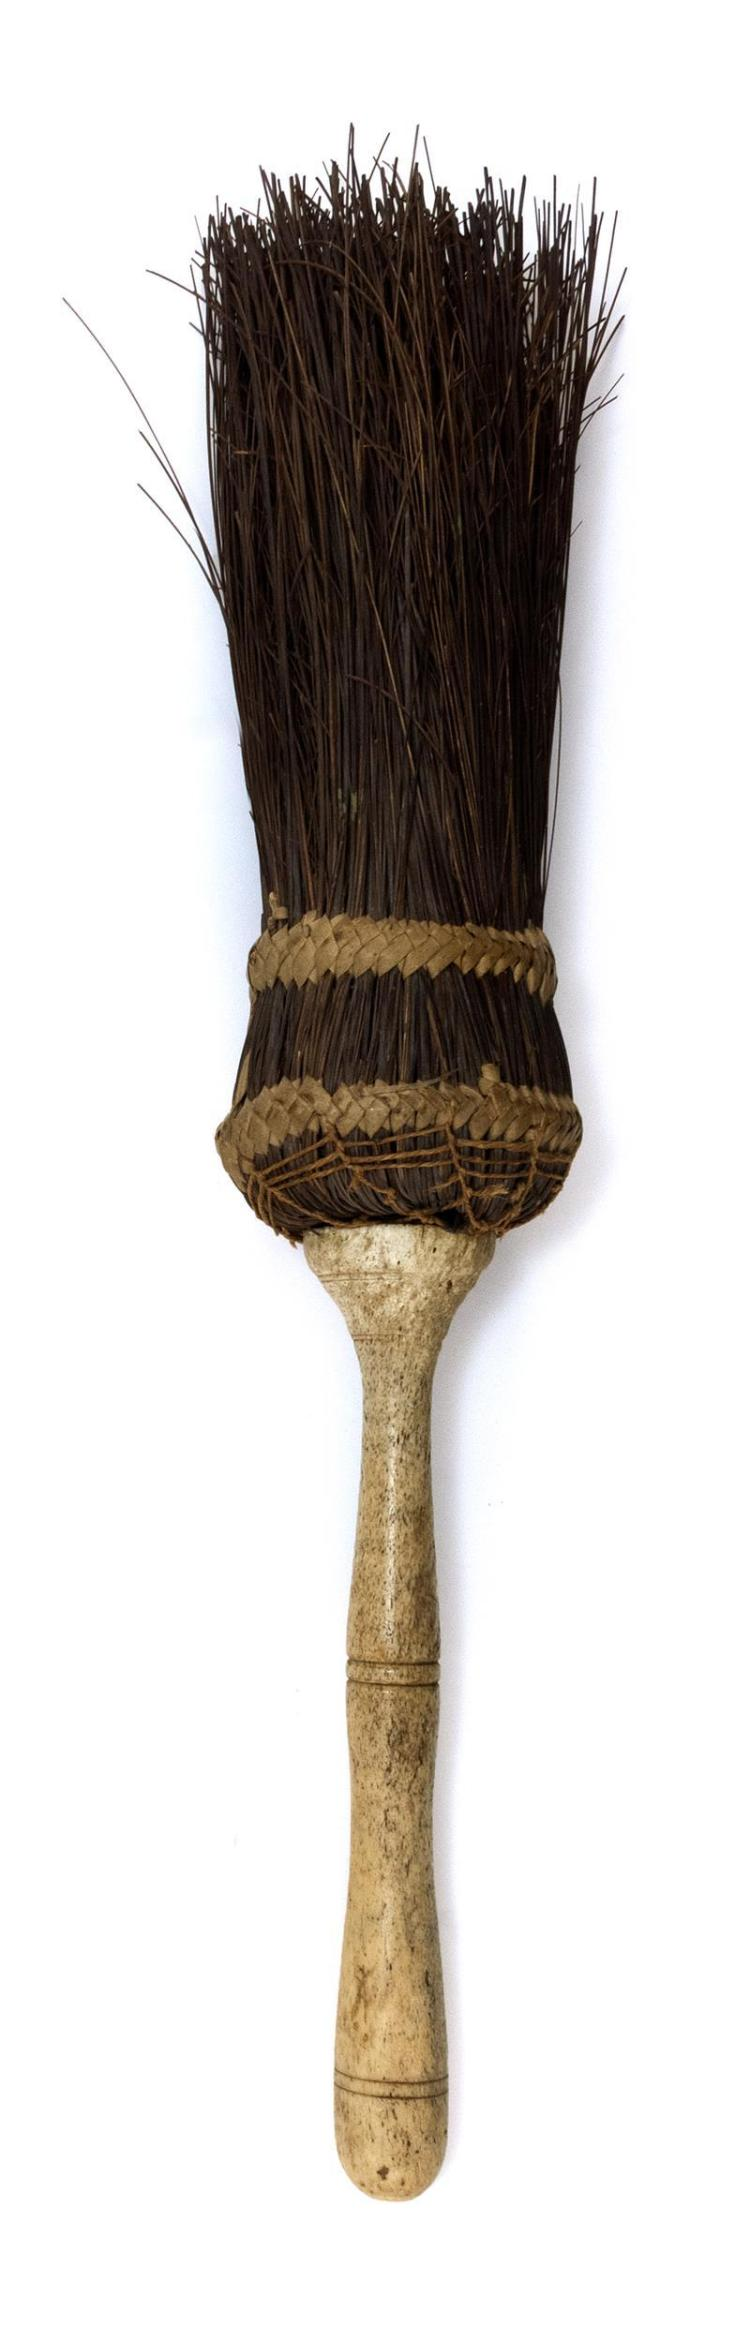 RARE WHALEMAN-MADE BROOM Turned and slightly serpentine handle with numerous incised lines. Natural bristles bound in entwined ratta...